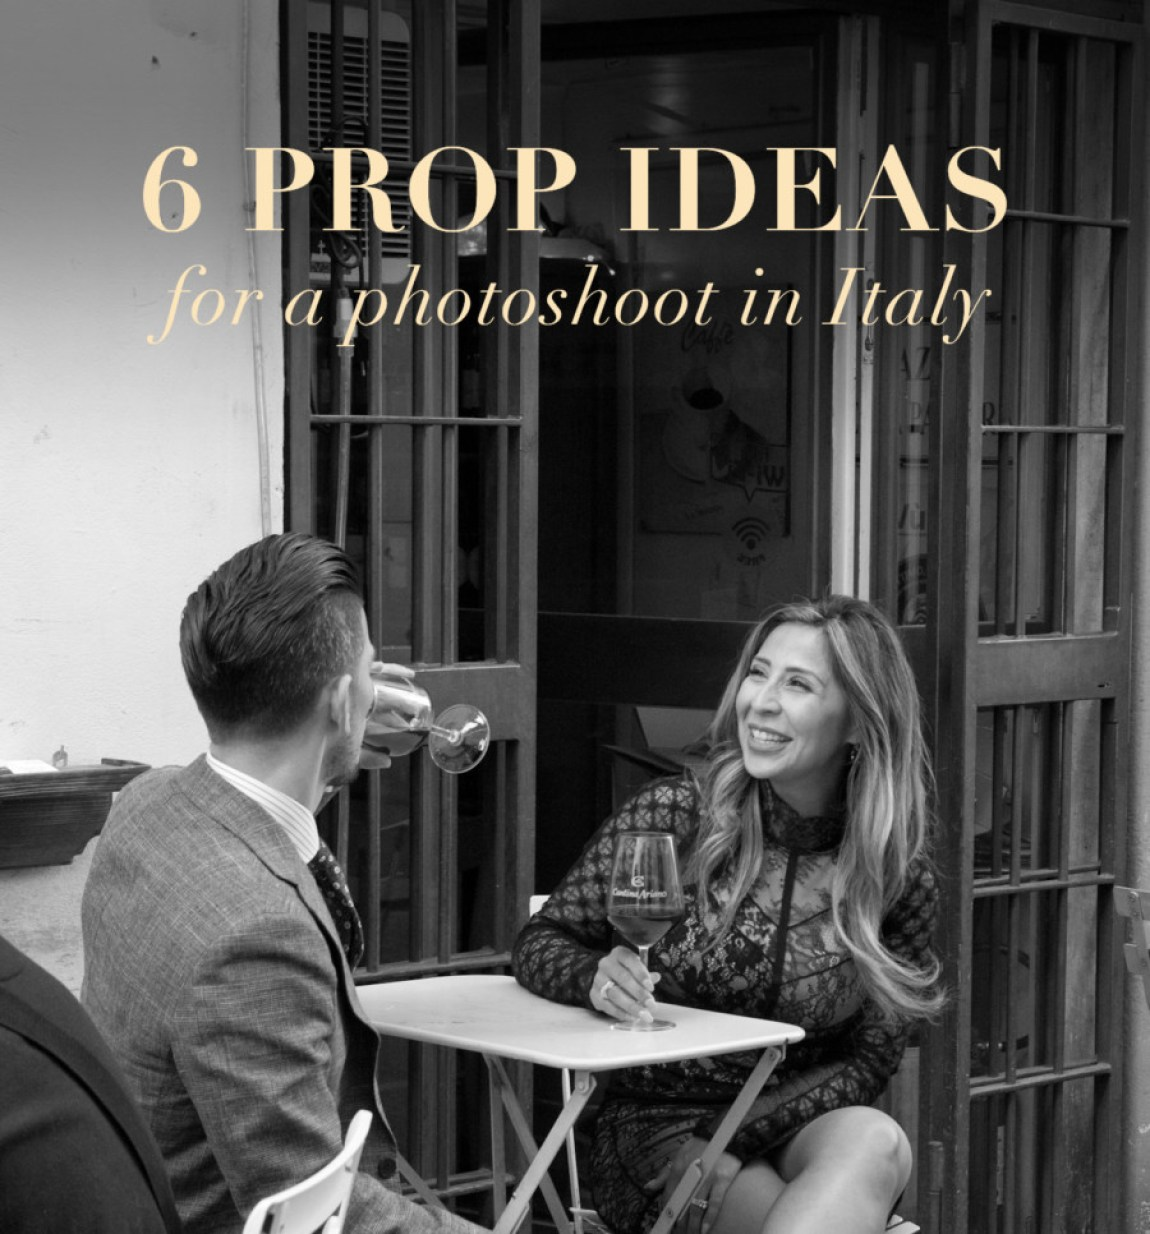 6 Prop Ideas for a photoshoot in Italy